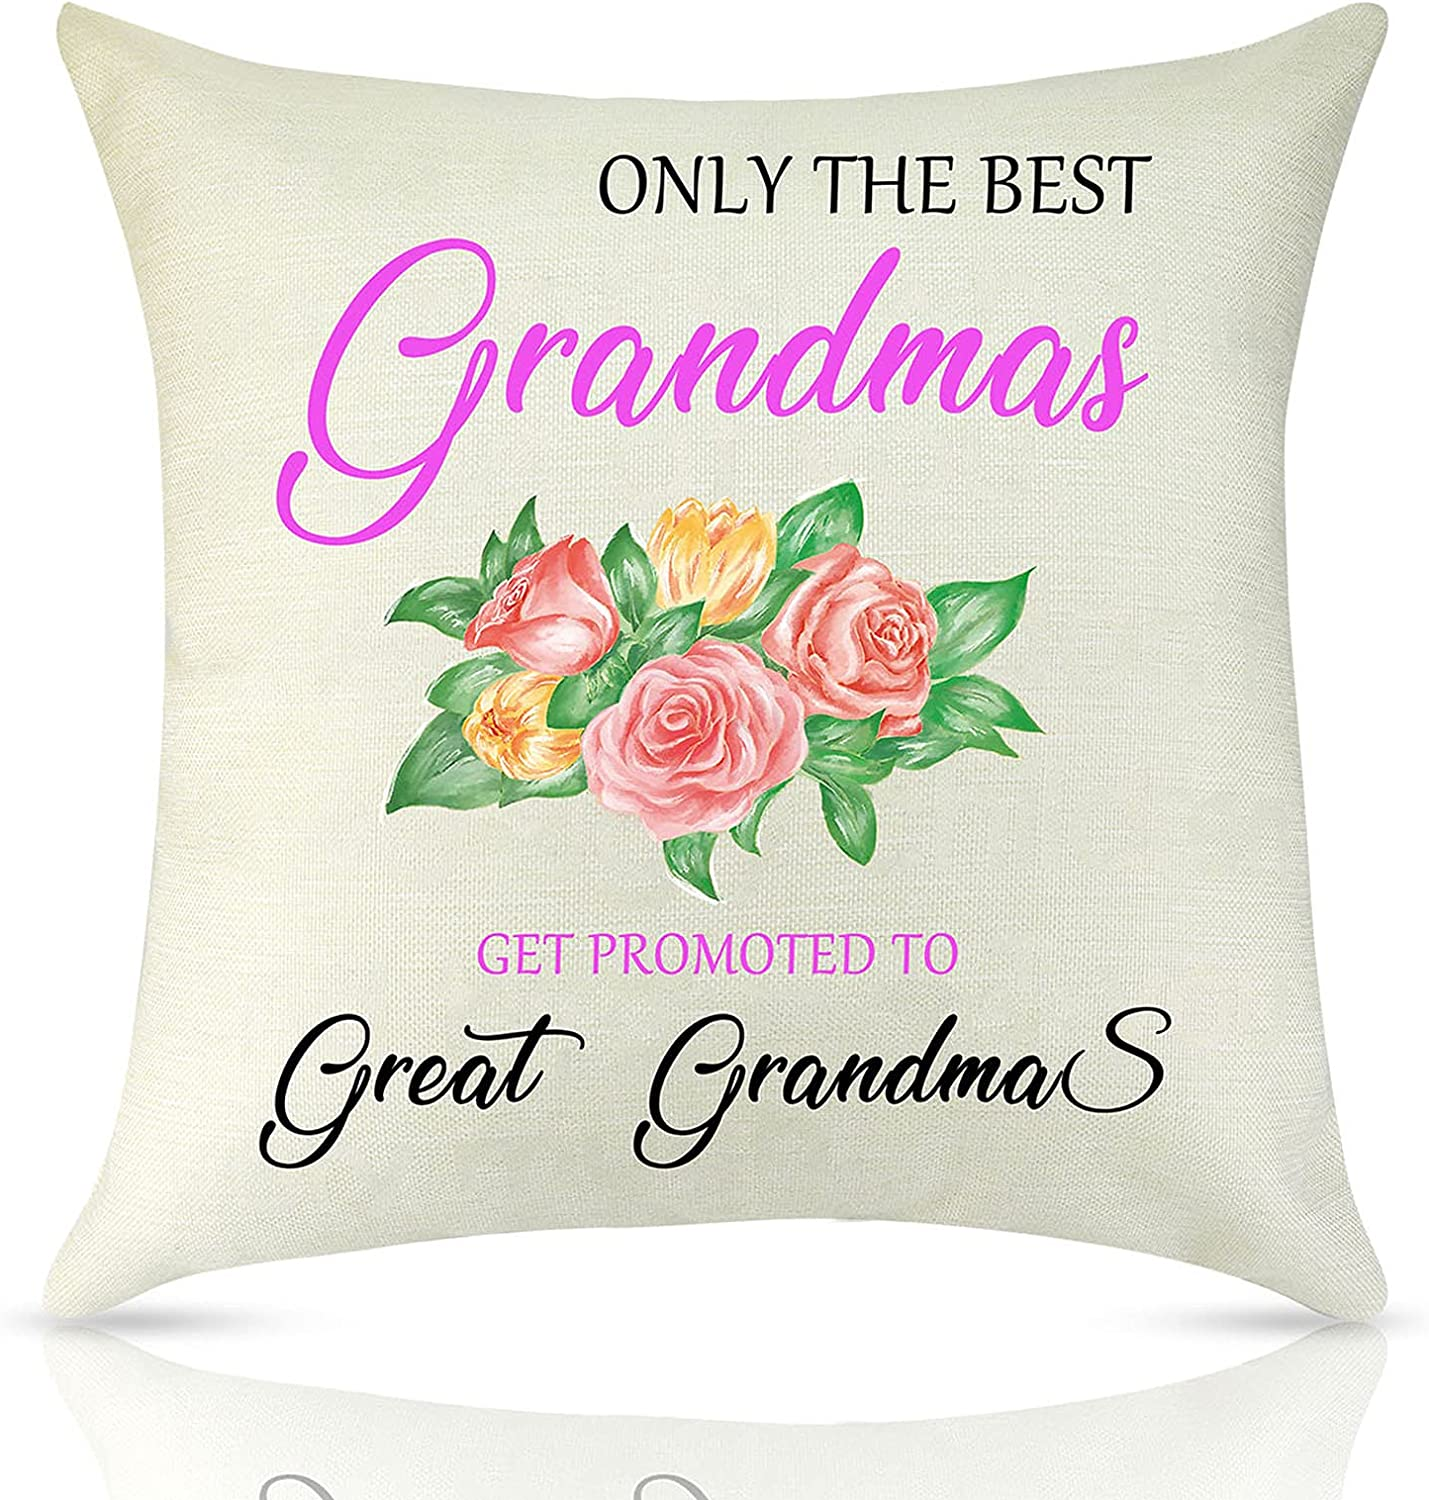 LuuWuu Grandma Gifts Pillow Cover Grandmother Gift from Grandchild Throw Pillow Case for Grandma Decorative Home Bedroom Cushion Cover Birthday Thanksgiving Day Gift for Her 18X18Inch